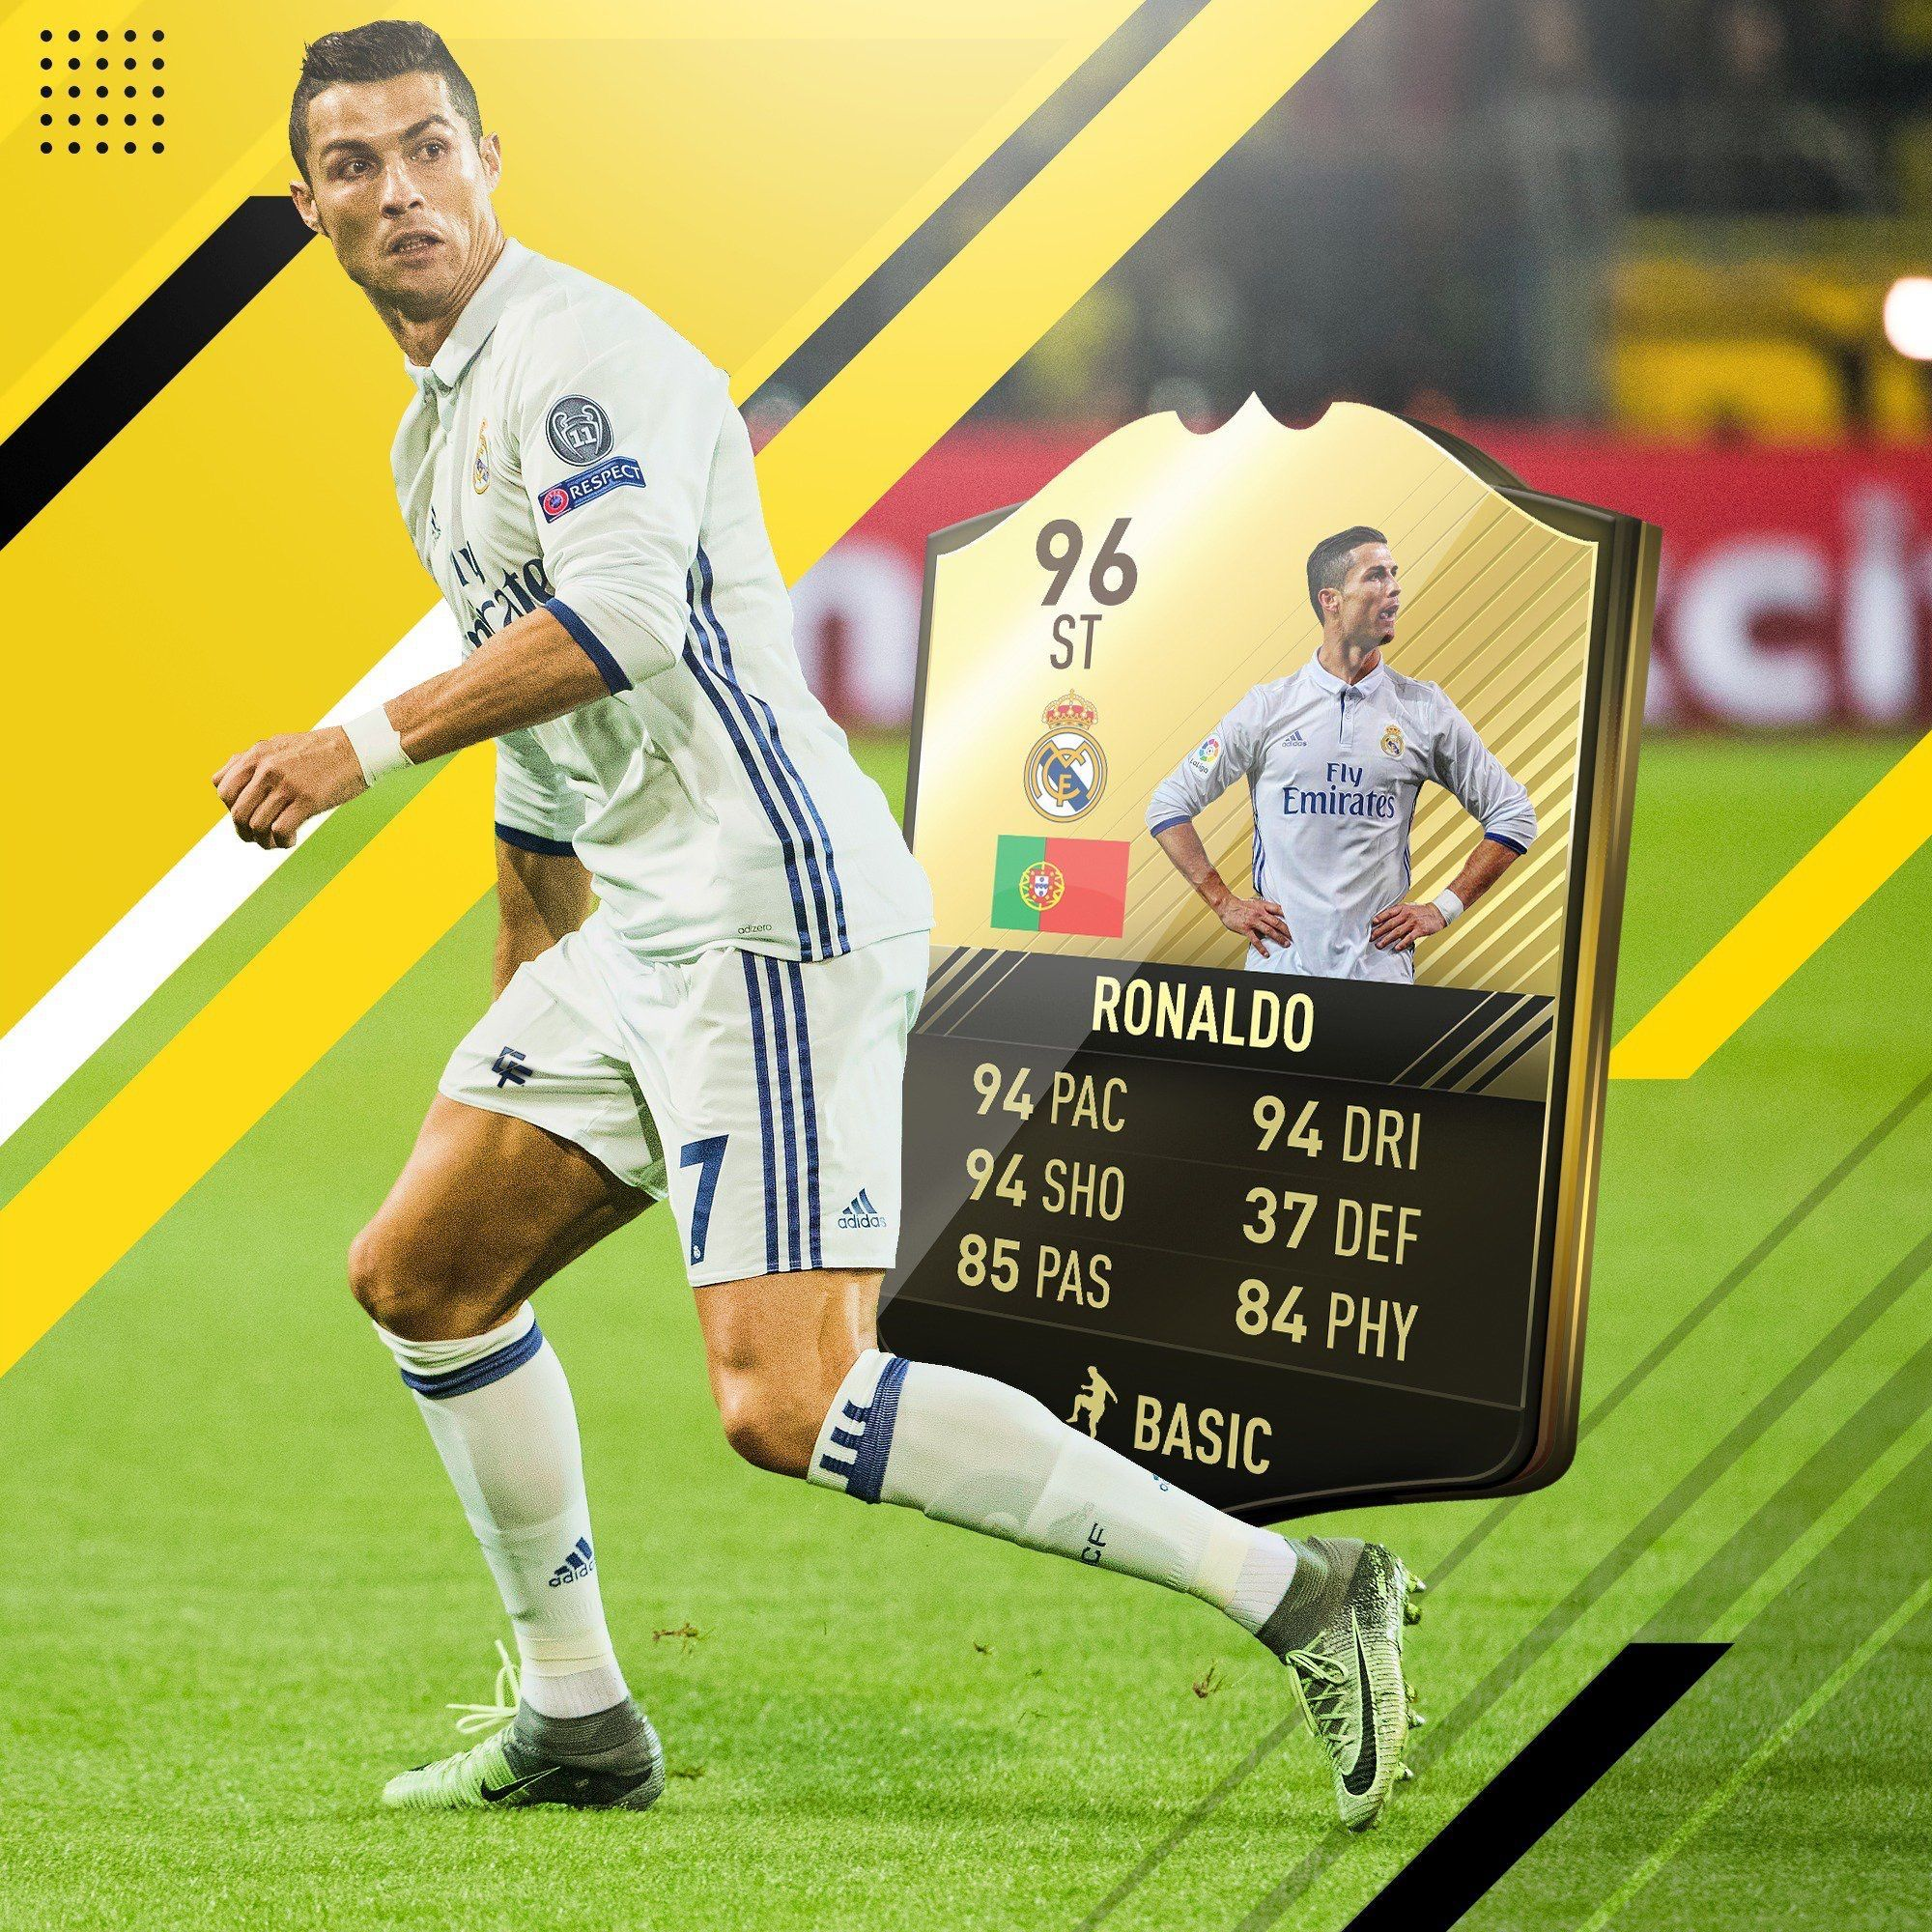 Pin by Bluecot on Get Discounted PS4 PC Xbox Games Fifa